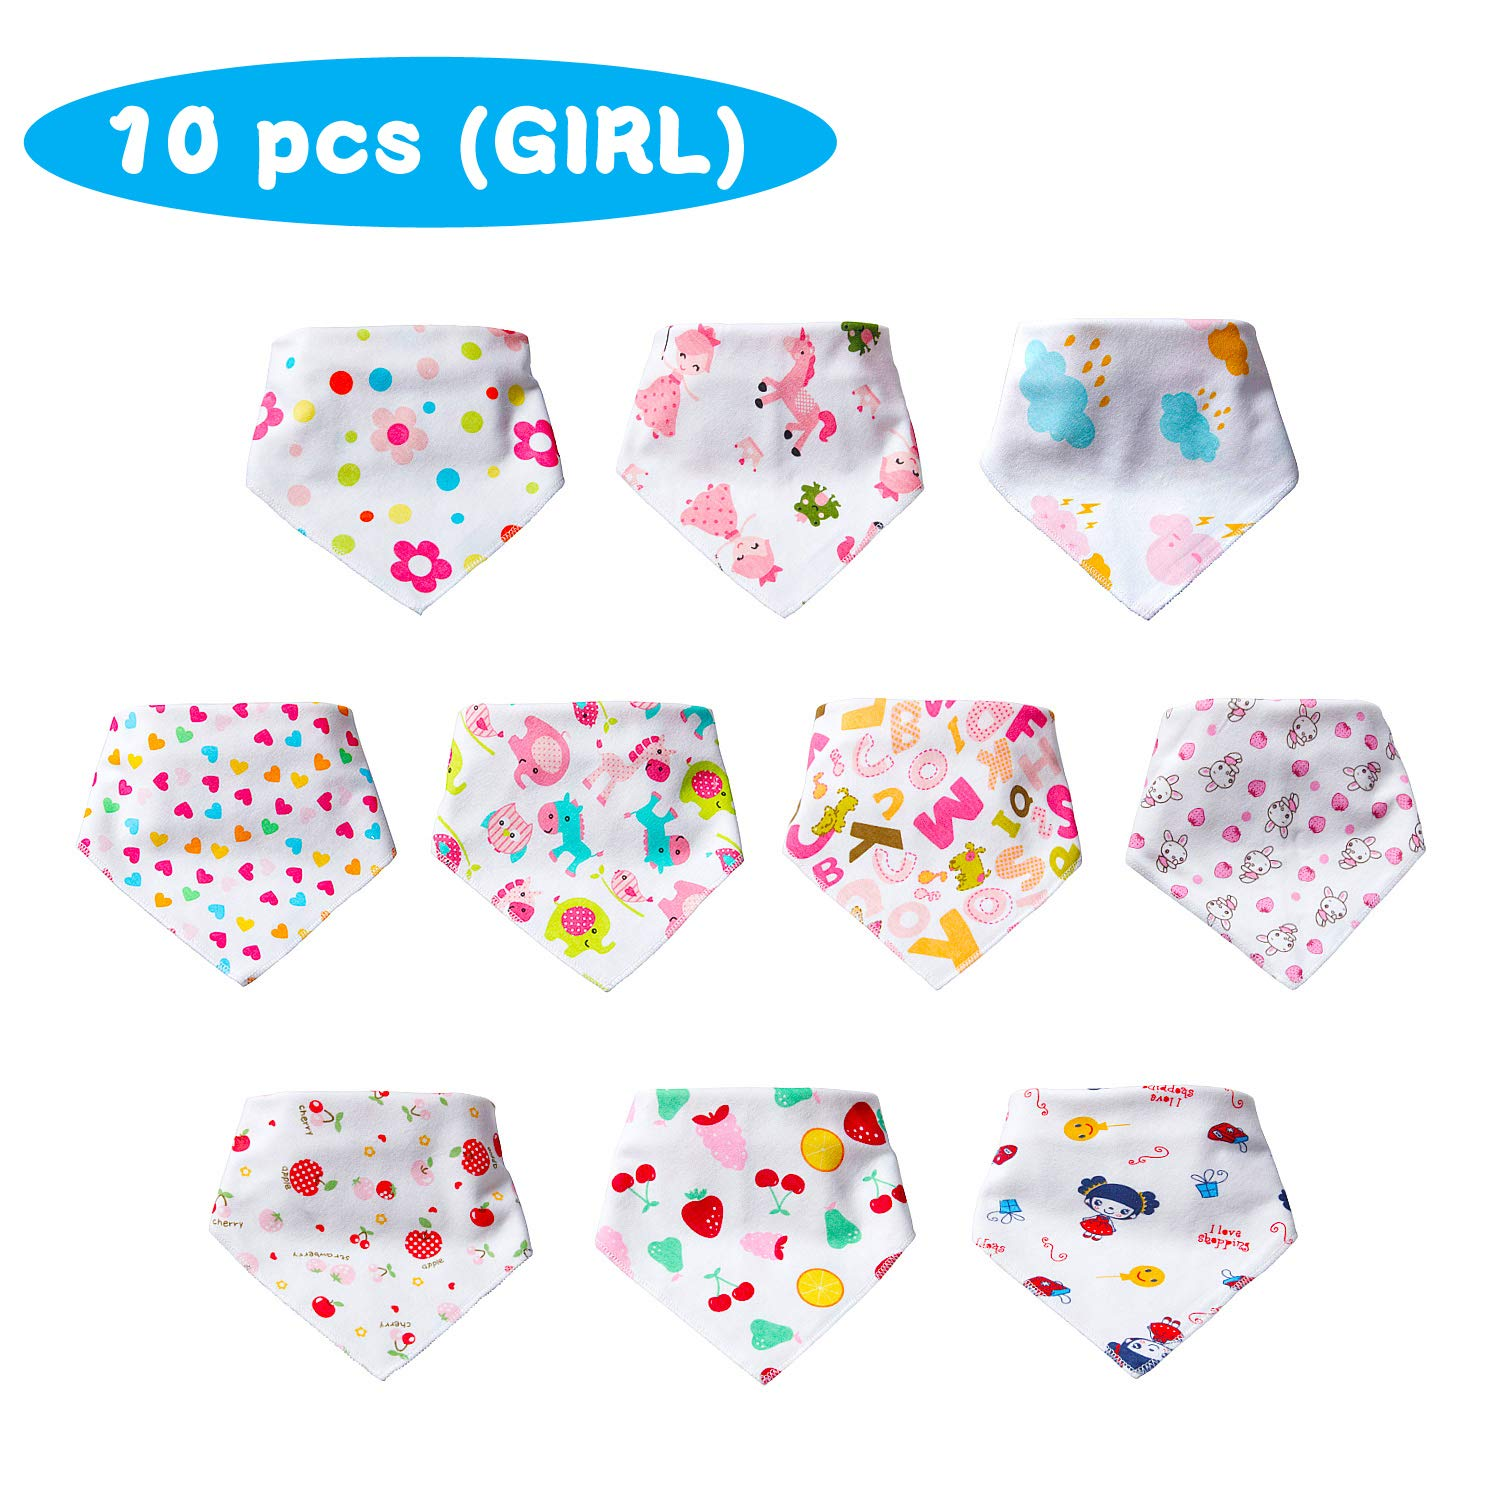 【Girls】Labebe 100/% Breathable Cotton Baby Bib for Girls Comfortable Soft /& Super Absorbent Caring Babys Delicate Neck Even in 95/°F Summer Days!Baby Bandana Bib Girl//Bandana Drool Bib Girl//White Bib